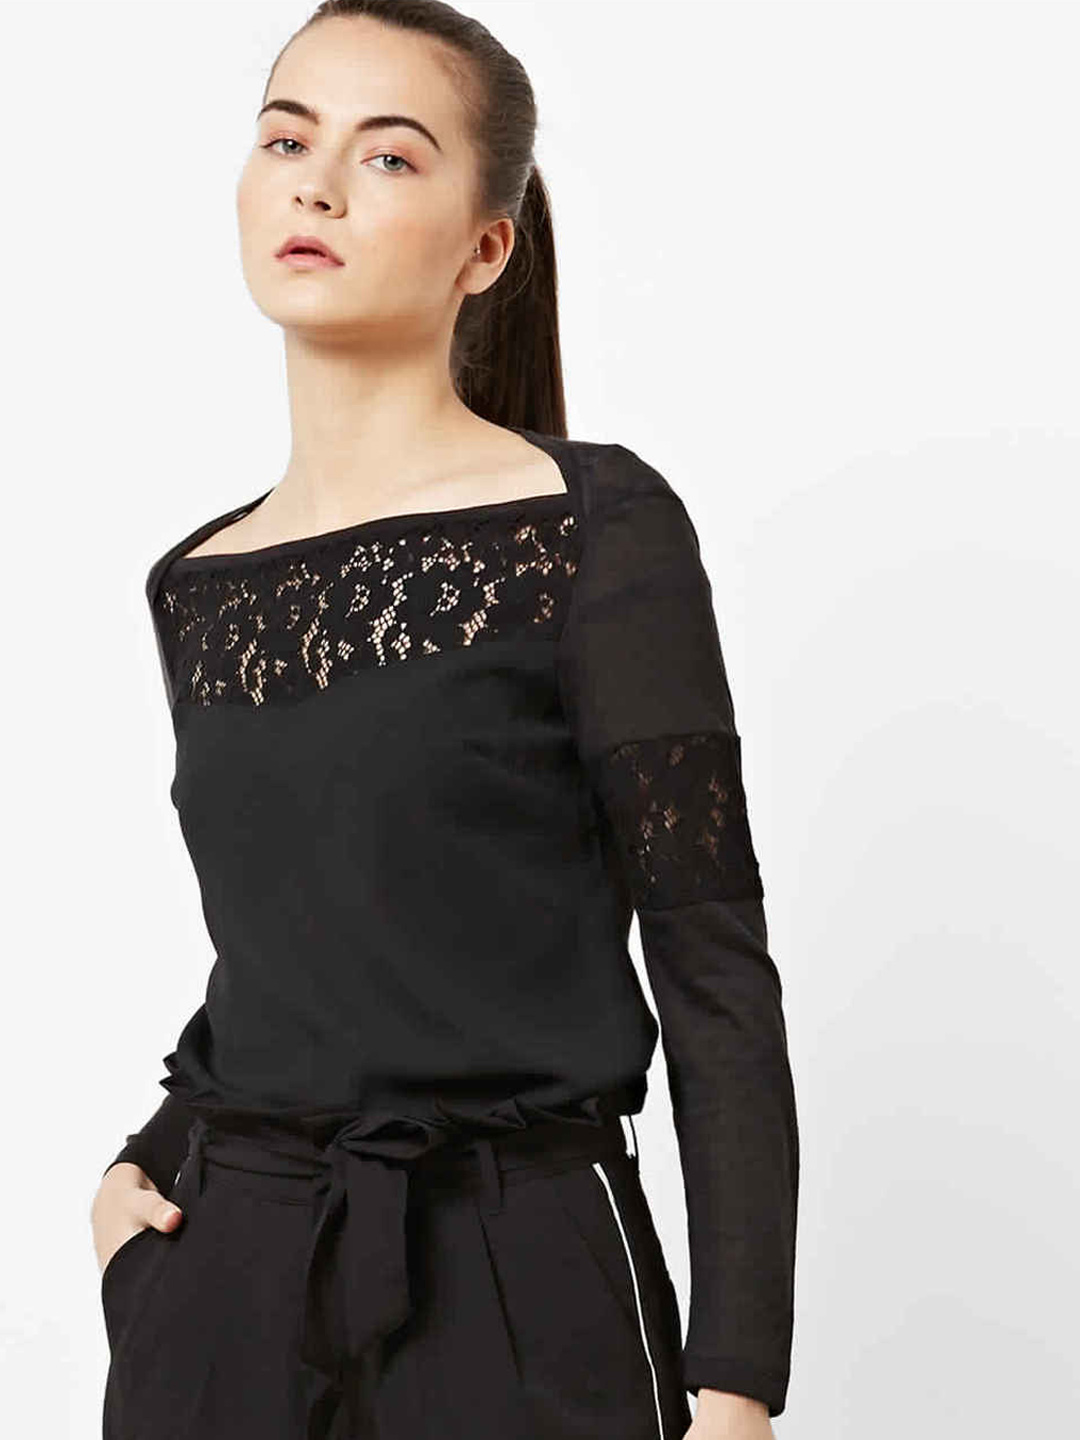 Women's slim fit boat neck long sleeves Nazellis lace top